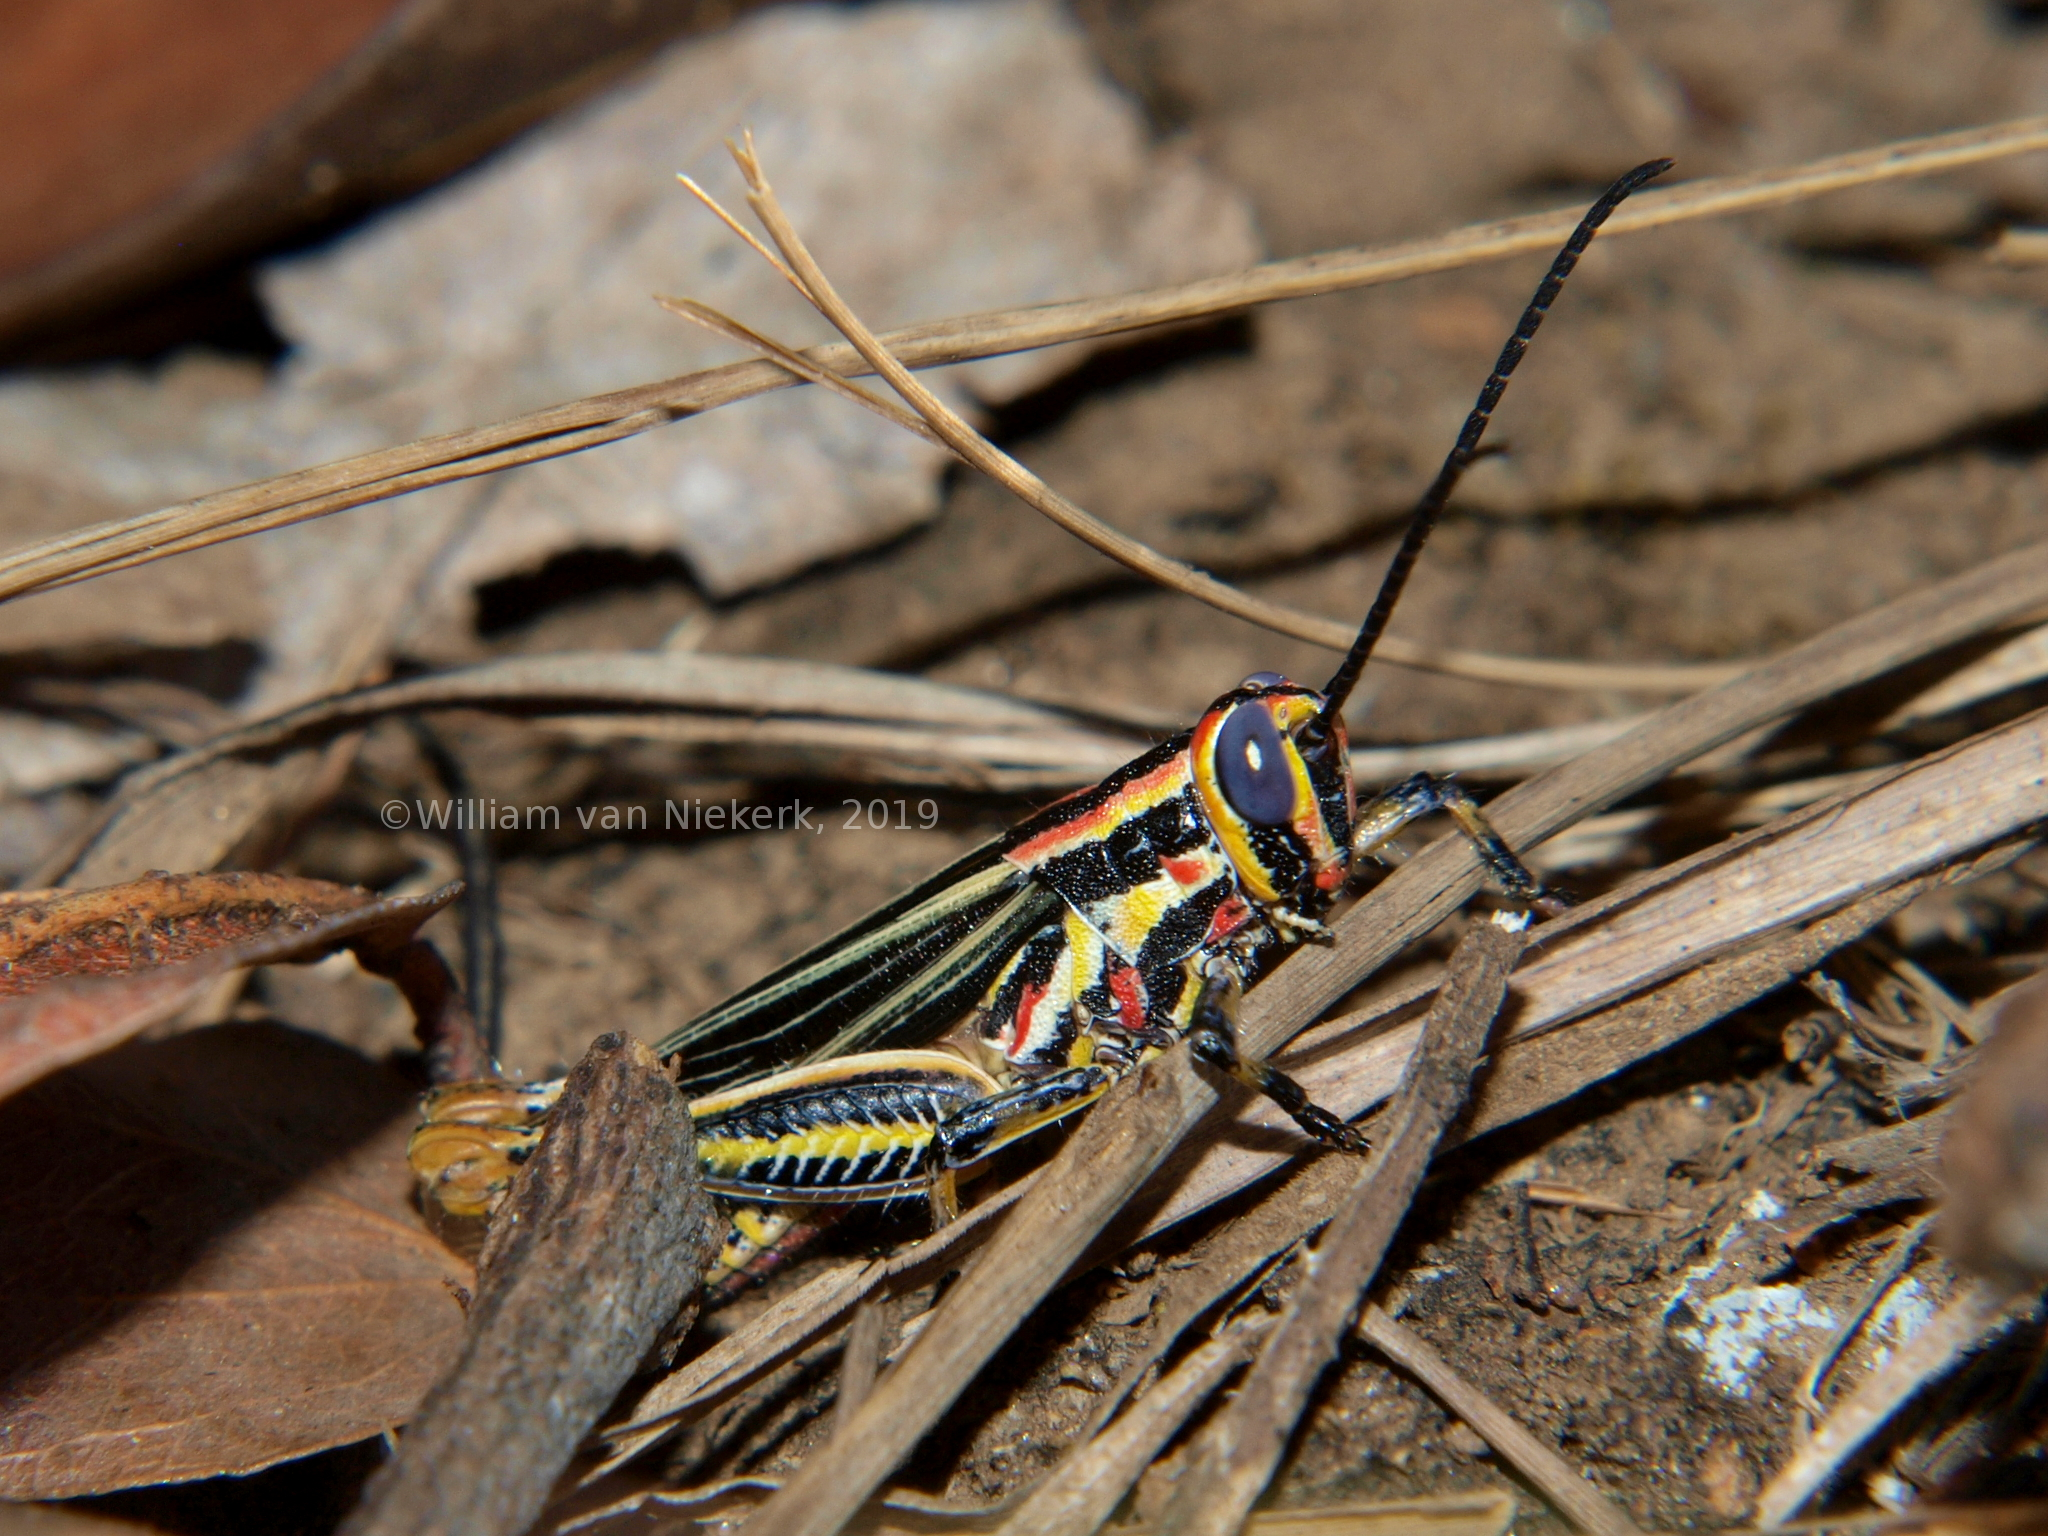 Grasshoppers and Crickets (Order Orthoptera) of Mutinondo